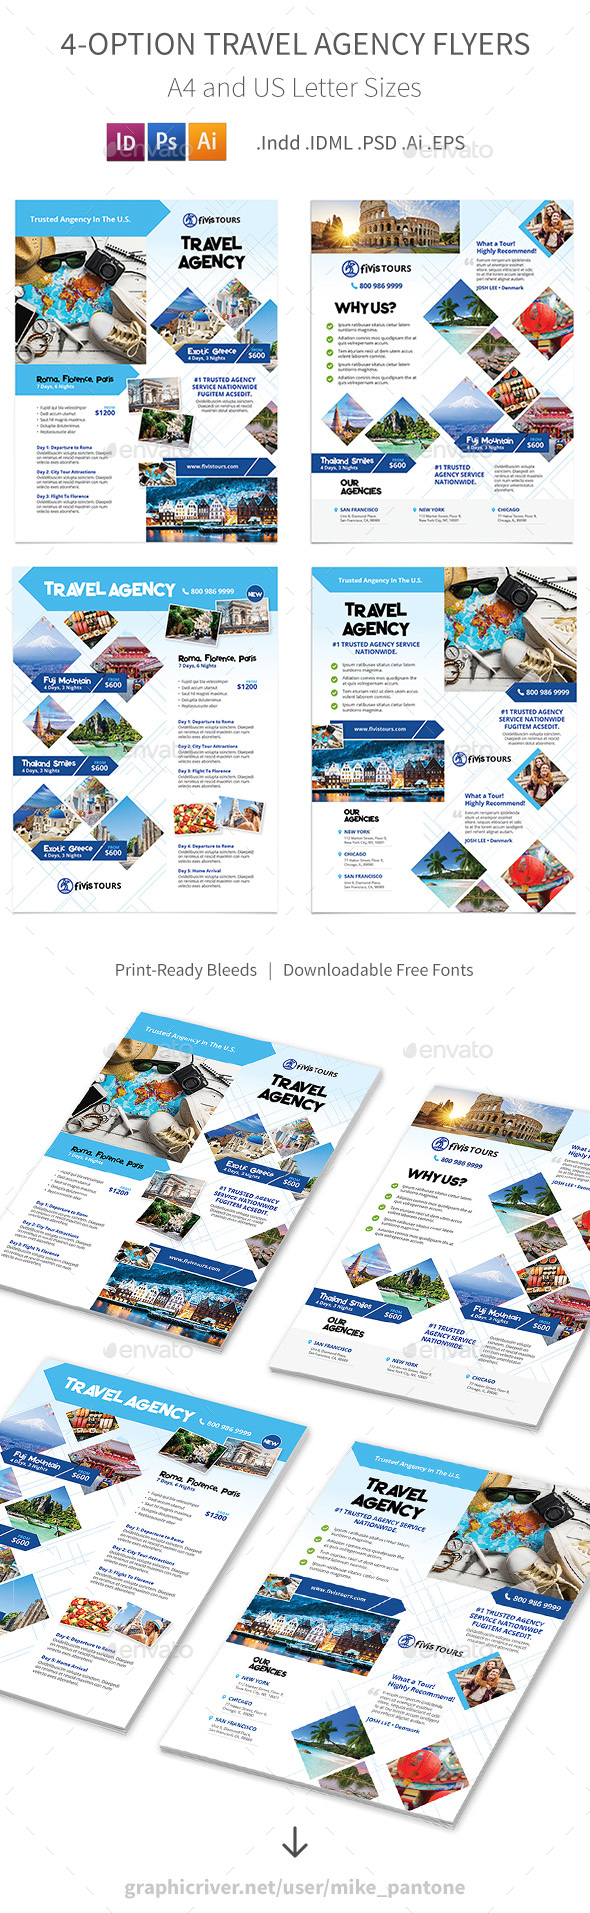 Travel Agency Flyers 3 – 4 Options - Corporate Flyers